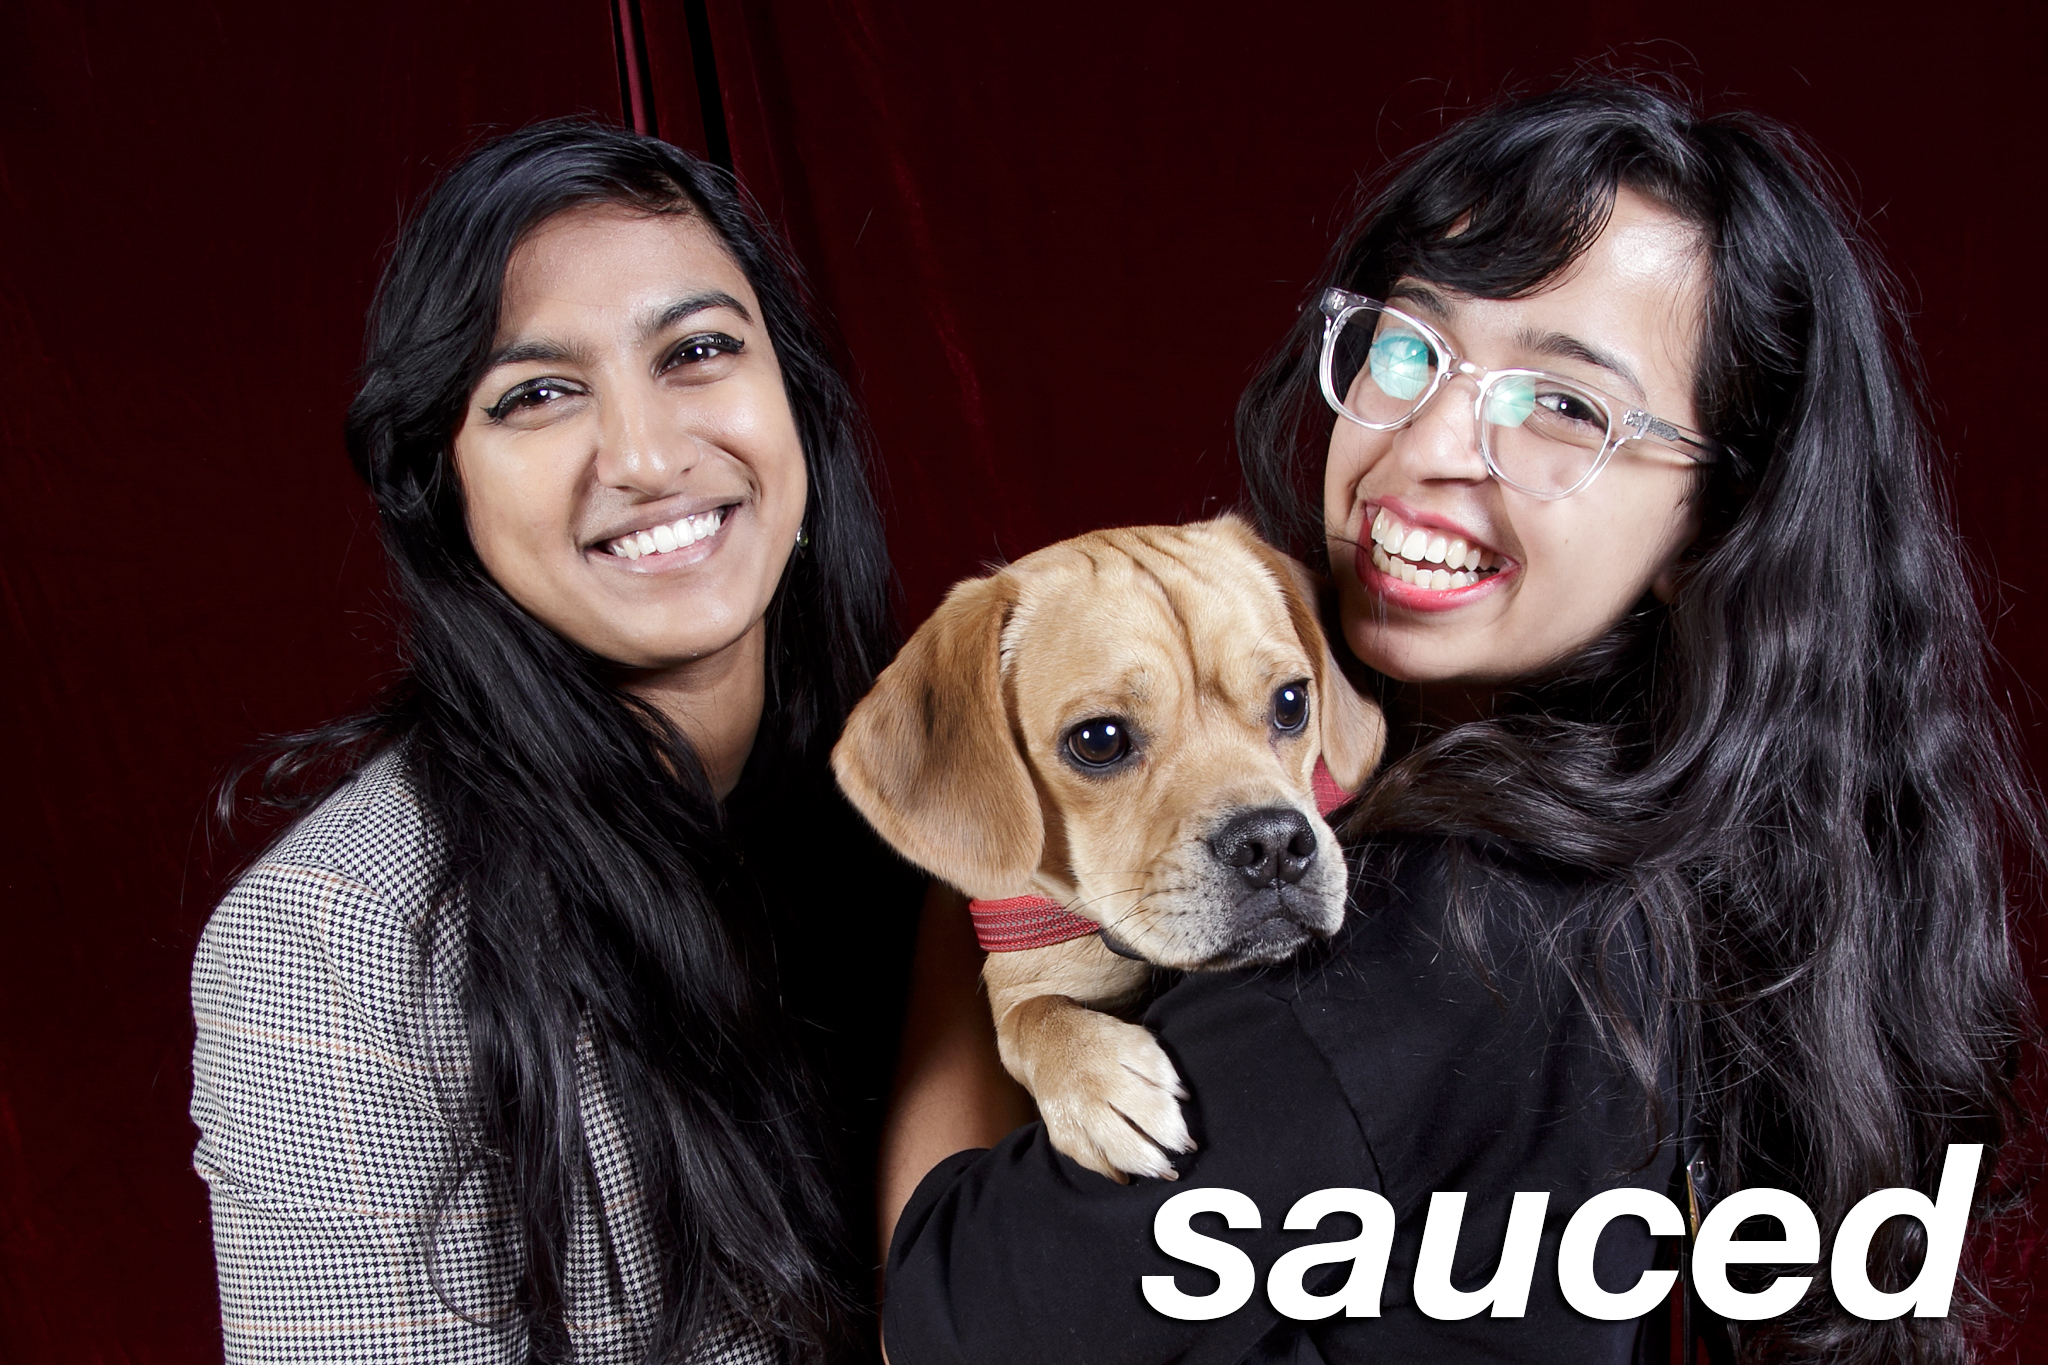 glitterguts portrait booth photos from sauced market in chicago, december 2018